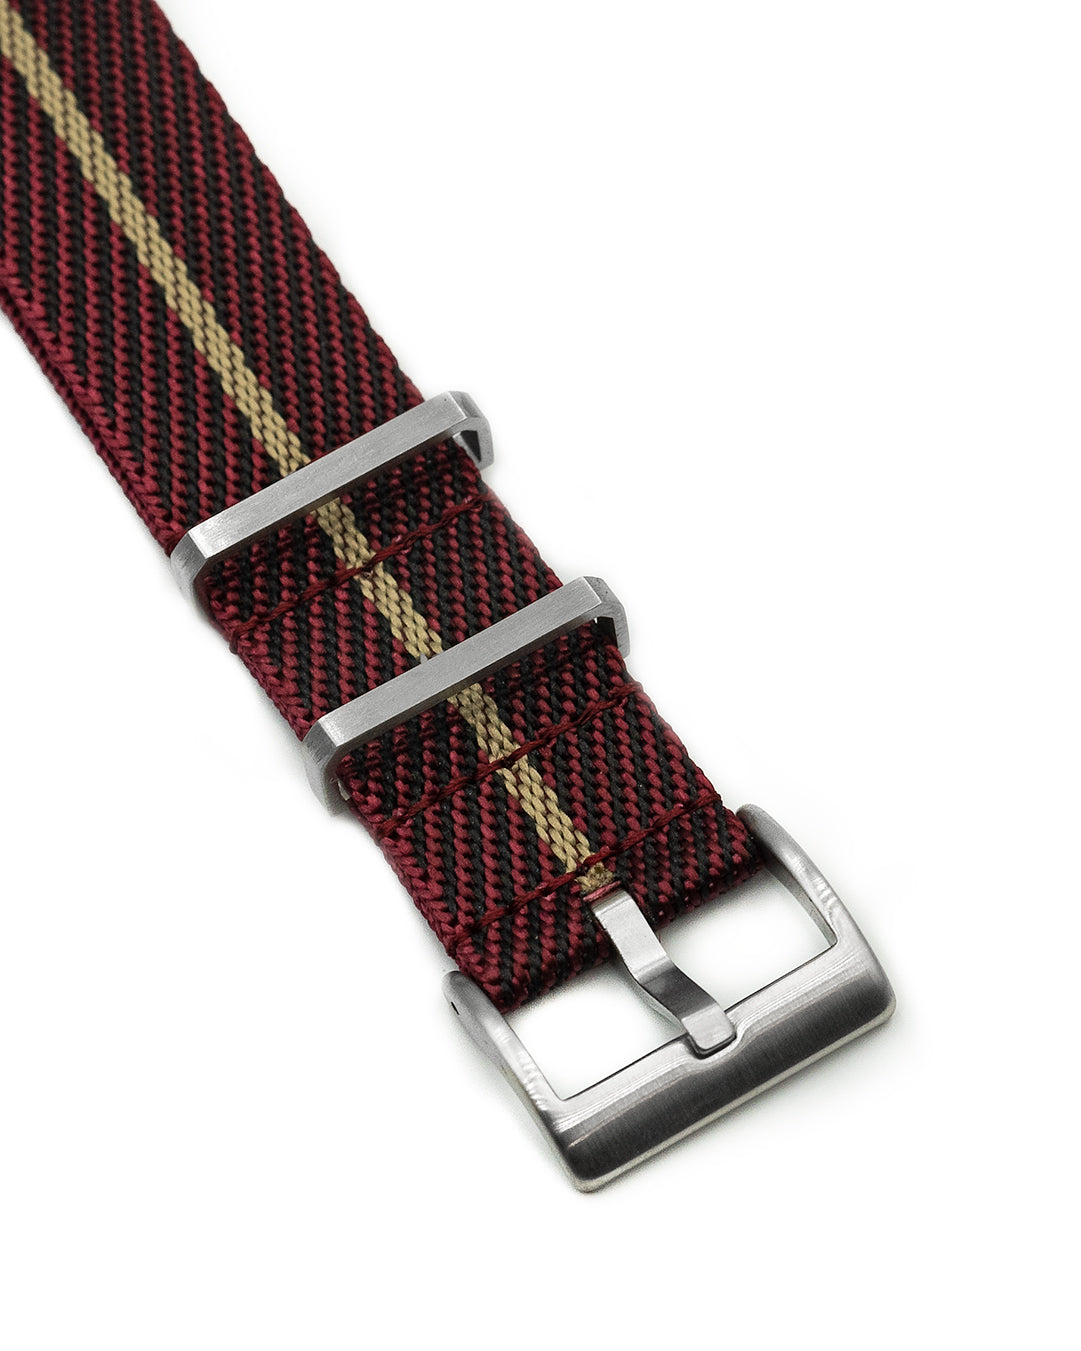 NATO M II - Maroon with Khaki centerline